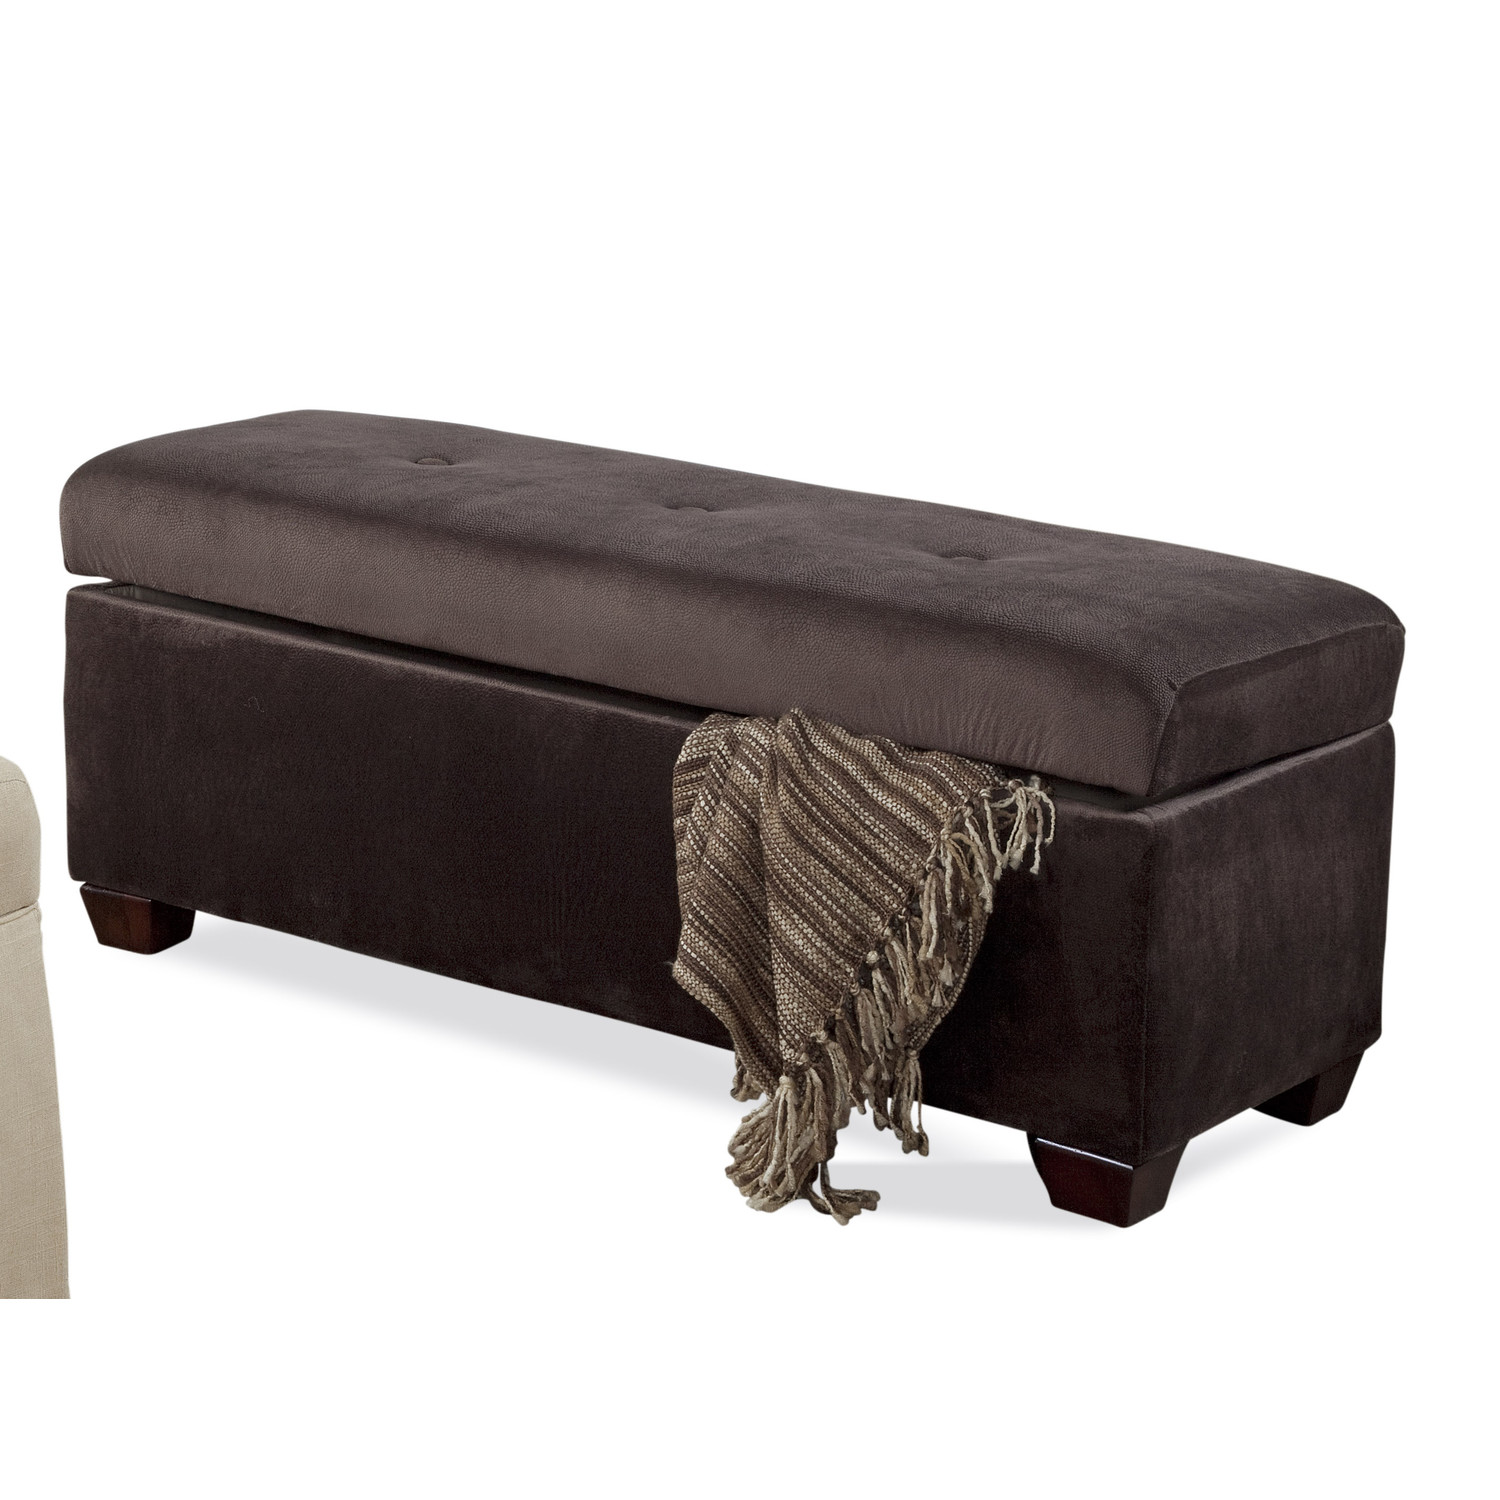 Bed ottoman bench Giving Extra Sophistication You Cannot ...